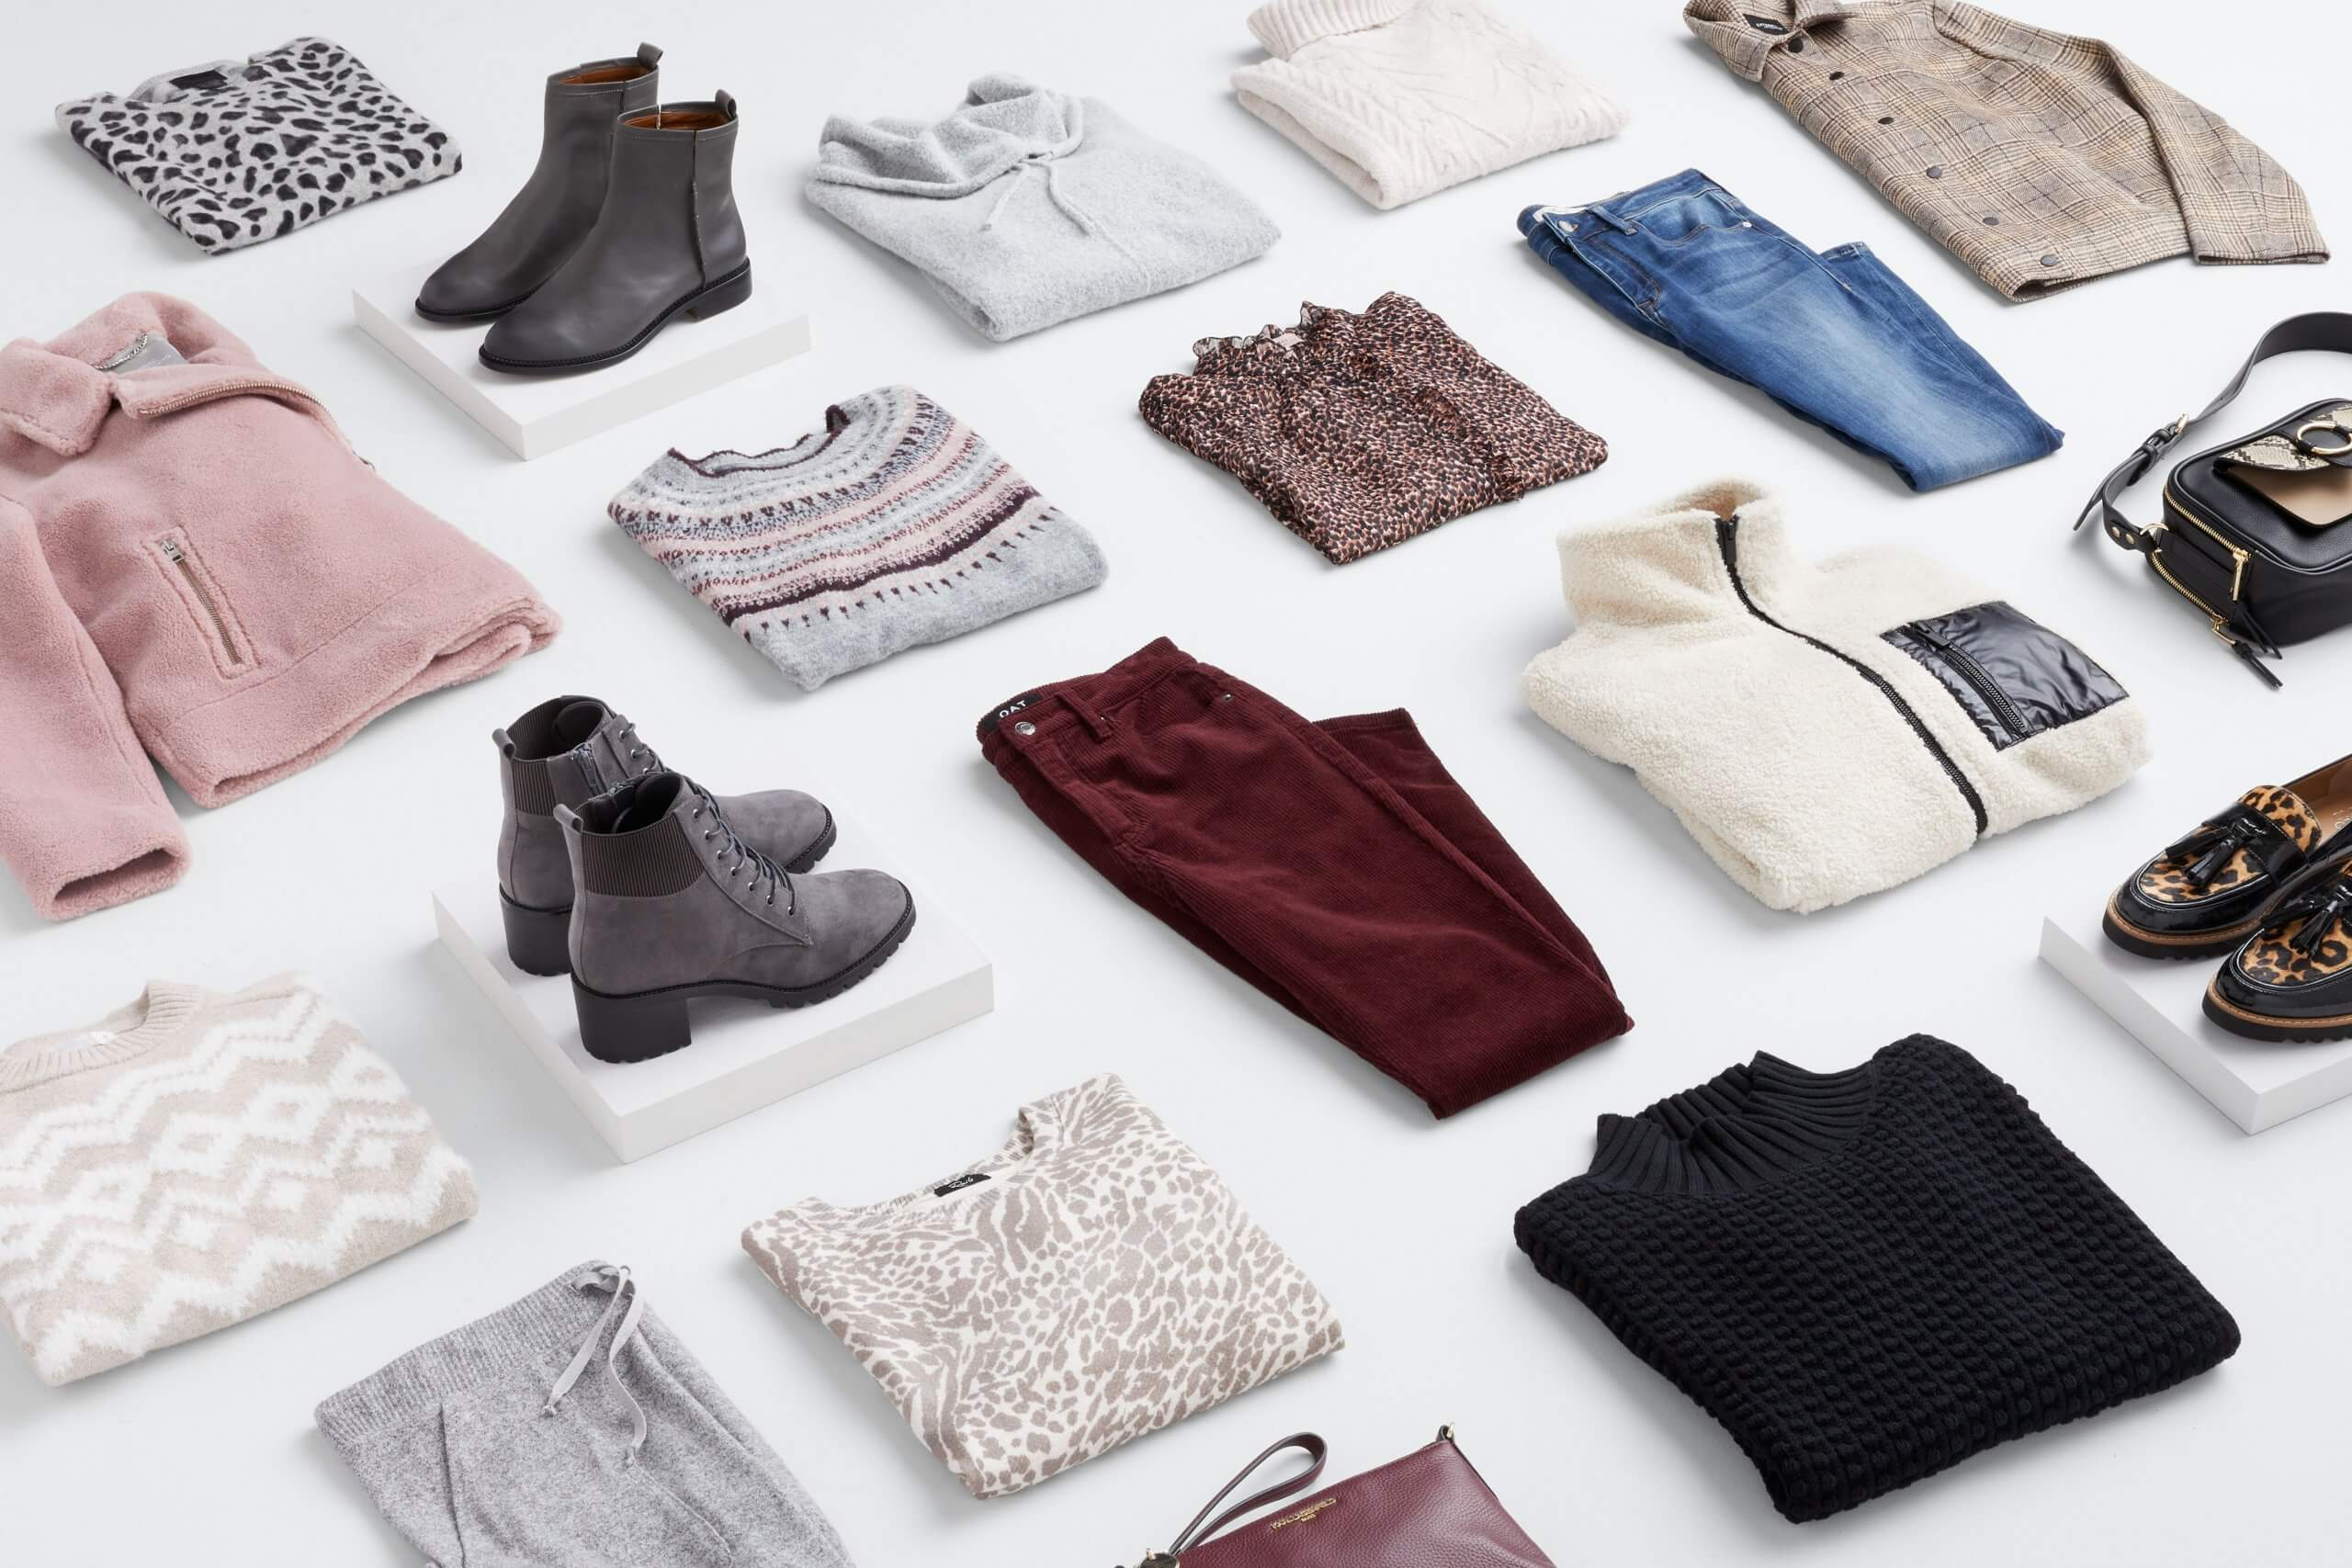 Stitch Fix Women's outfit laydown featuring pink sherpa jacket, grey and black animal print crew neck sweater, grey booties, grey cowl neck pullover, cream cable knit pullover sweater, tan plaid jacket, tan fairisle sweater, grey heeled booties, burgundy corduroy pants, brown animal print shirt, blue jeans, grey jogger pants, white and cream animal print sweatshirt, black turtleneck sweater and black animal print loafers.